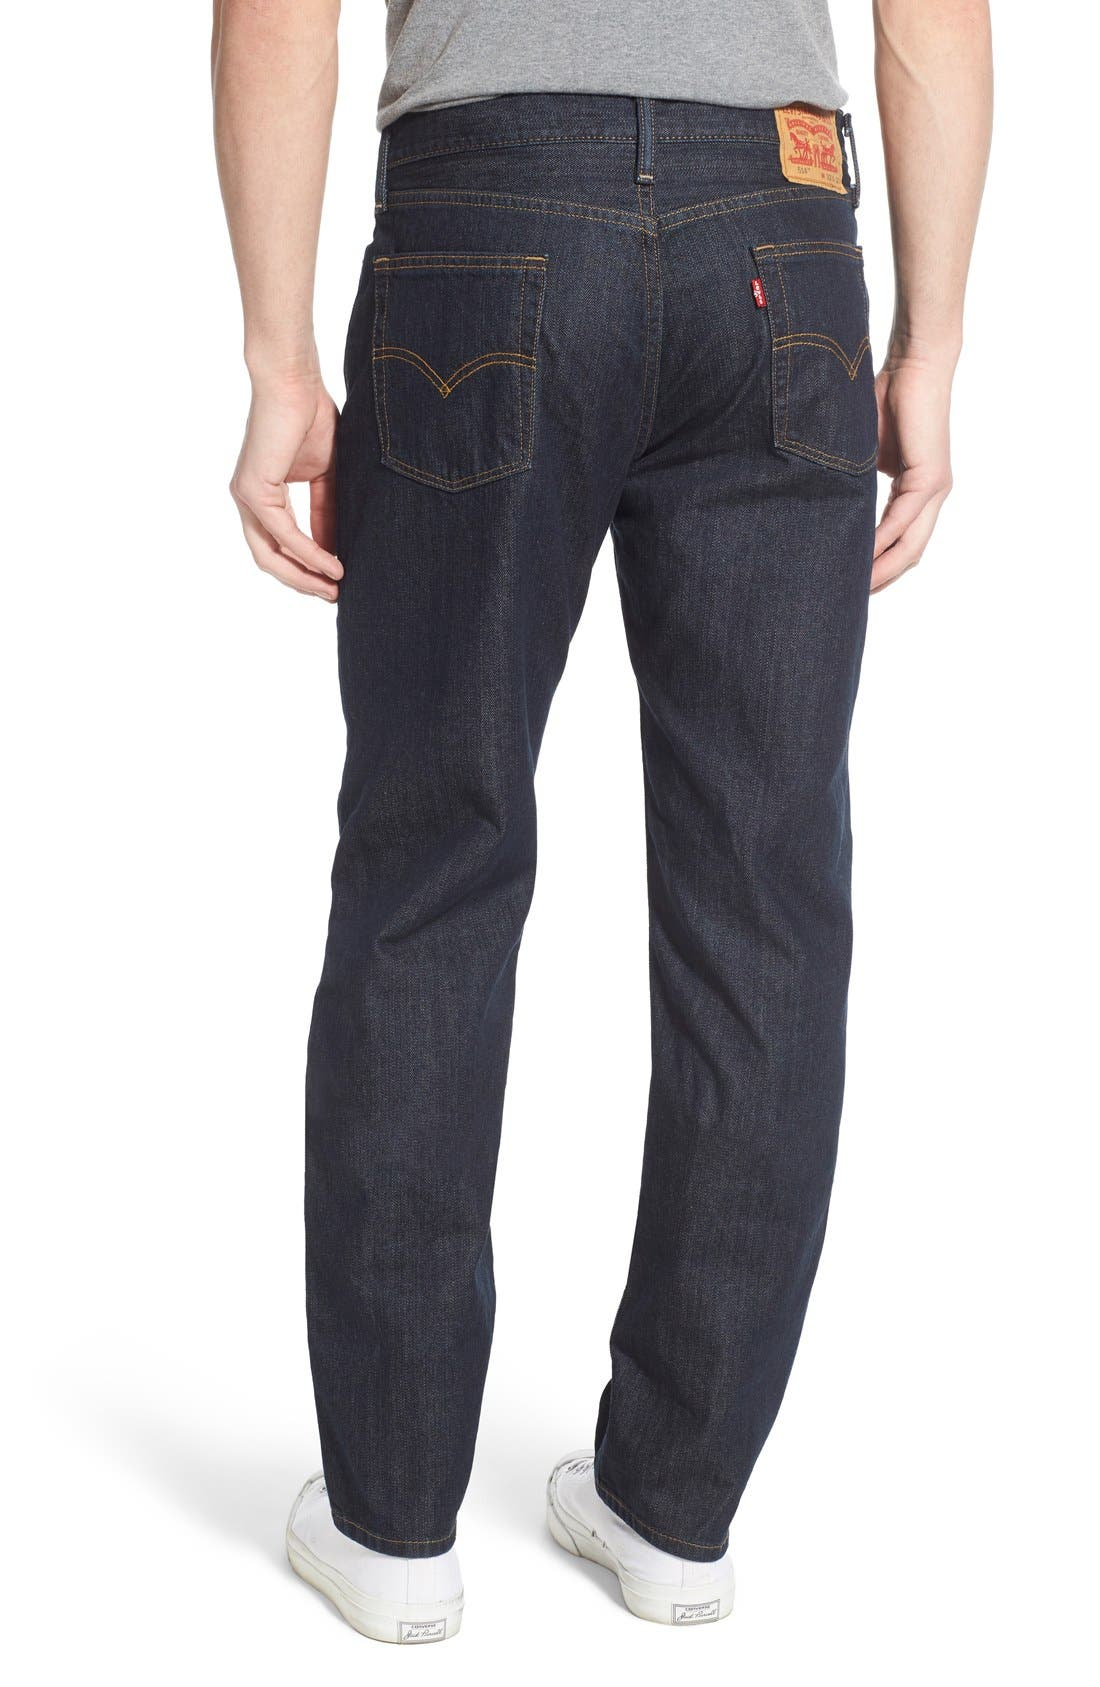 Alternate Image 2  - Levi's® 514™ Straight Leg Jeans (Tumbled Rigid) (Regular & Tall)